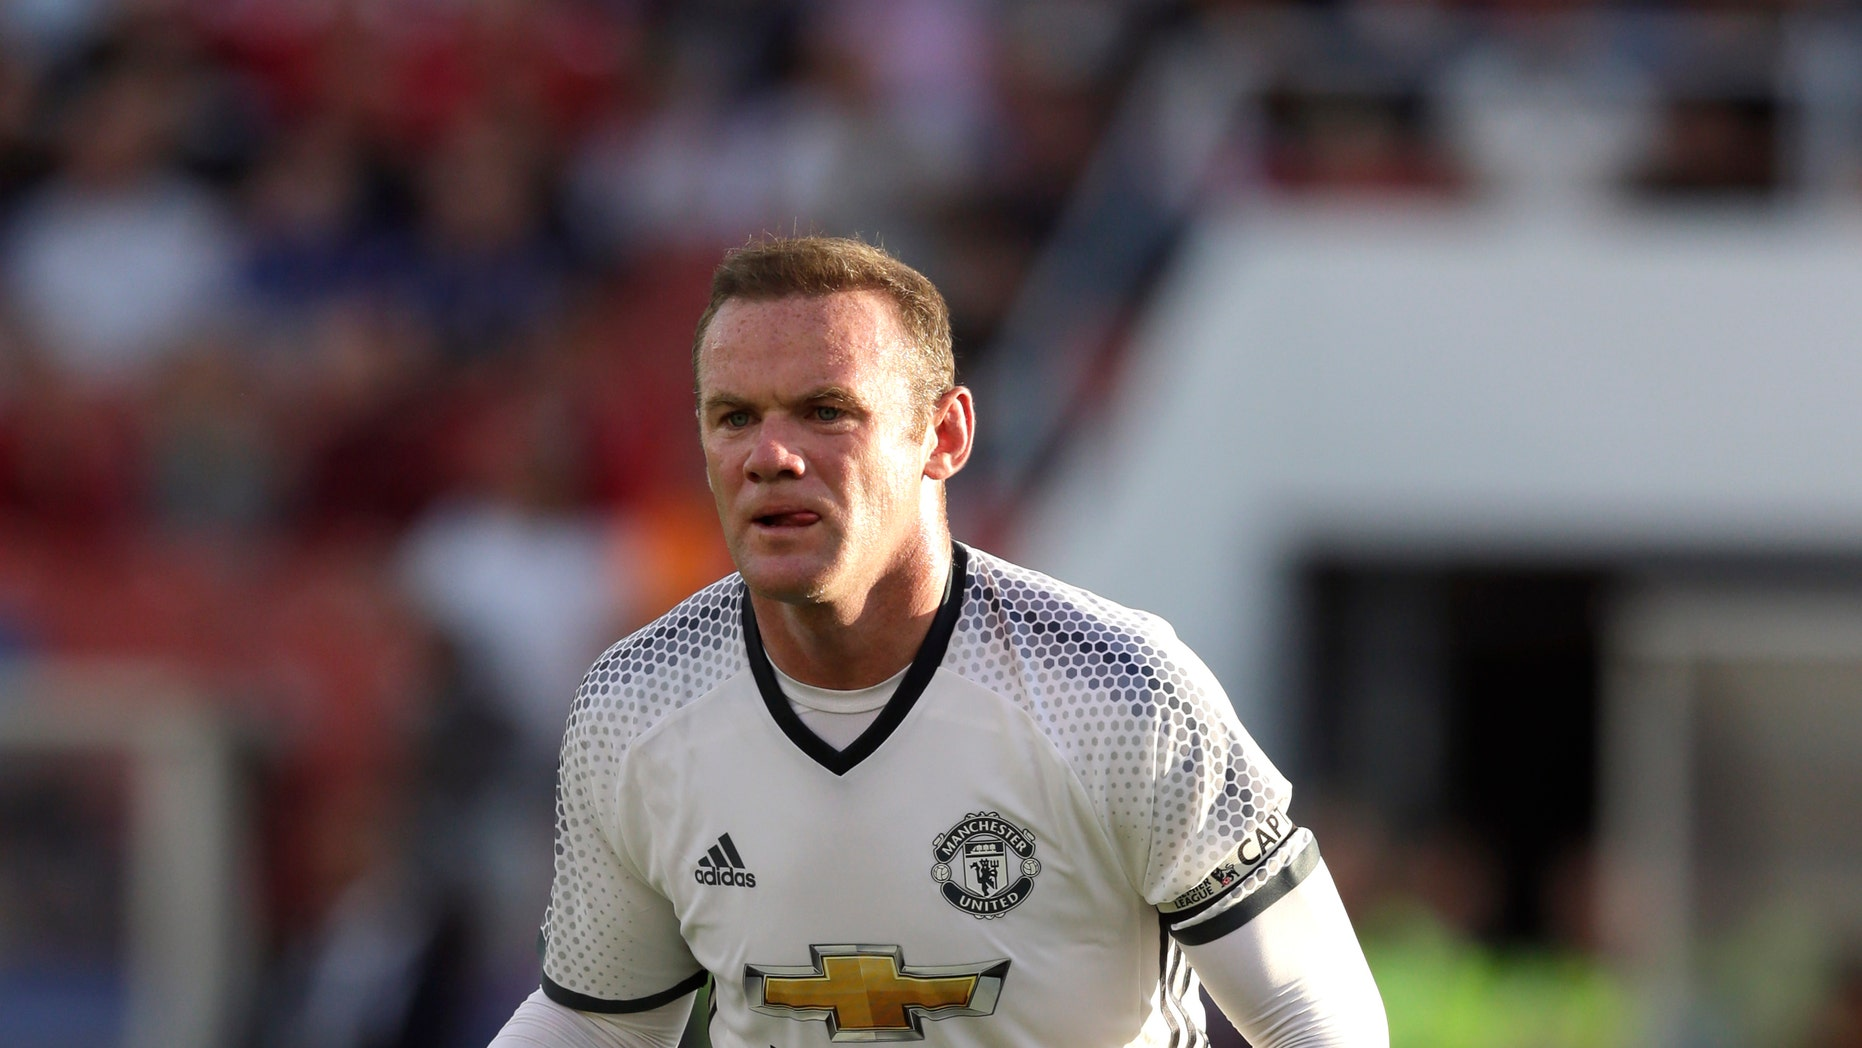 File photo - Manchester United's Wayne Rooney (Reuters/Henry Browne).